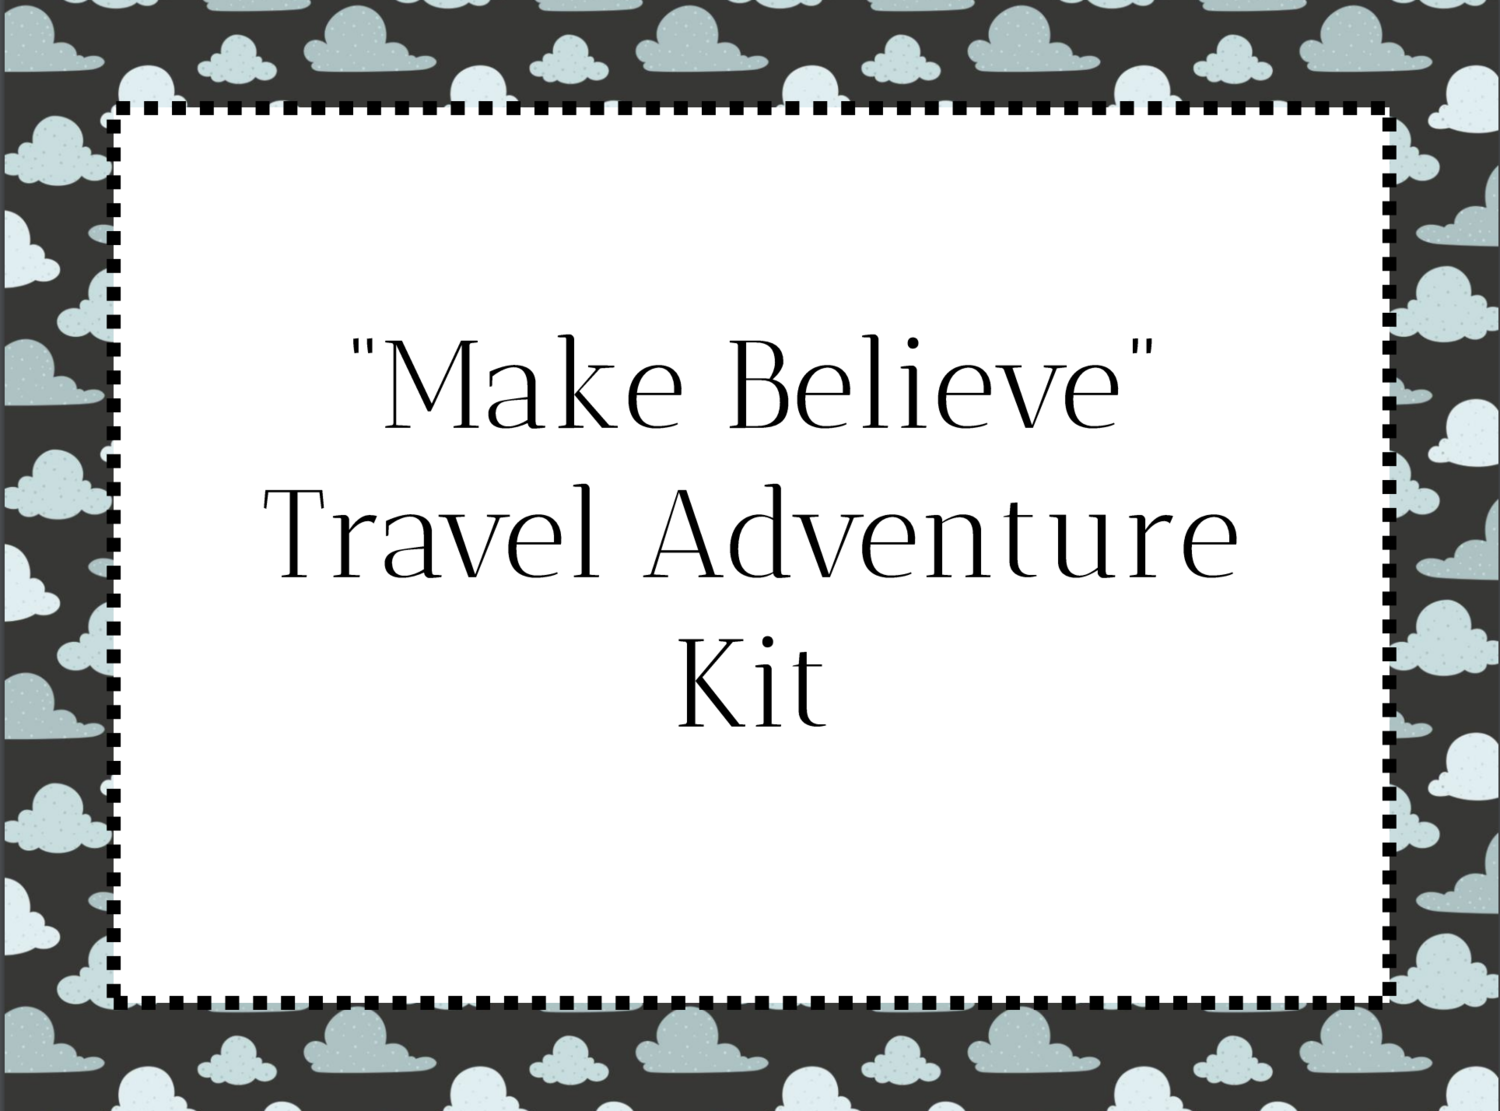 Printable Passport for Kids- Pretend Travel Adventure Kit